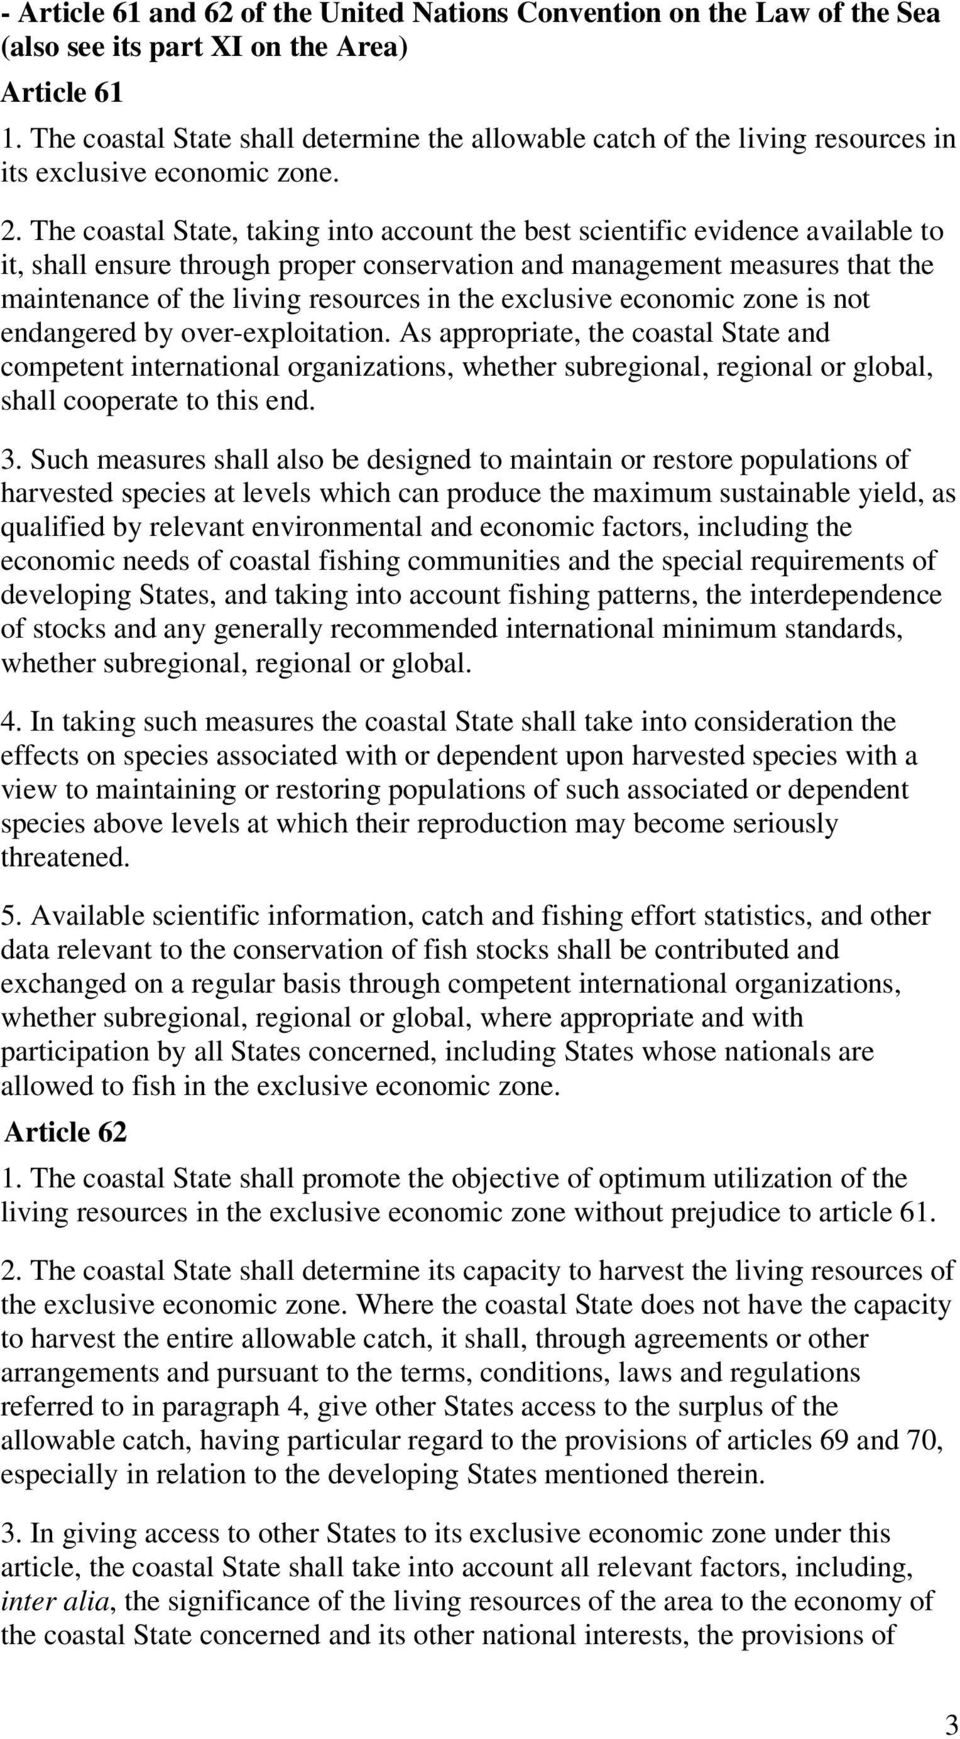 The coastal State, taking into account the best scientific evidence available to it, shall ensure through proper conservation and management measures that the maintenance of the living resources in